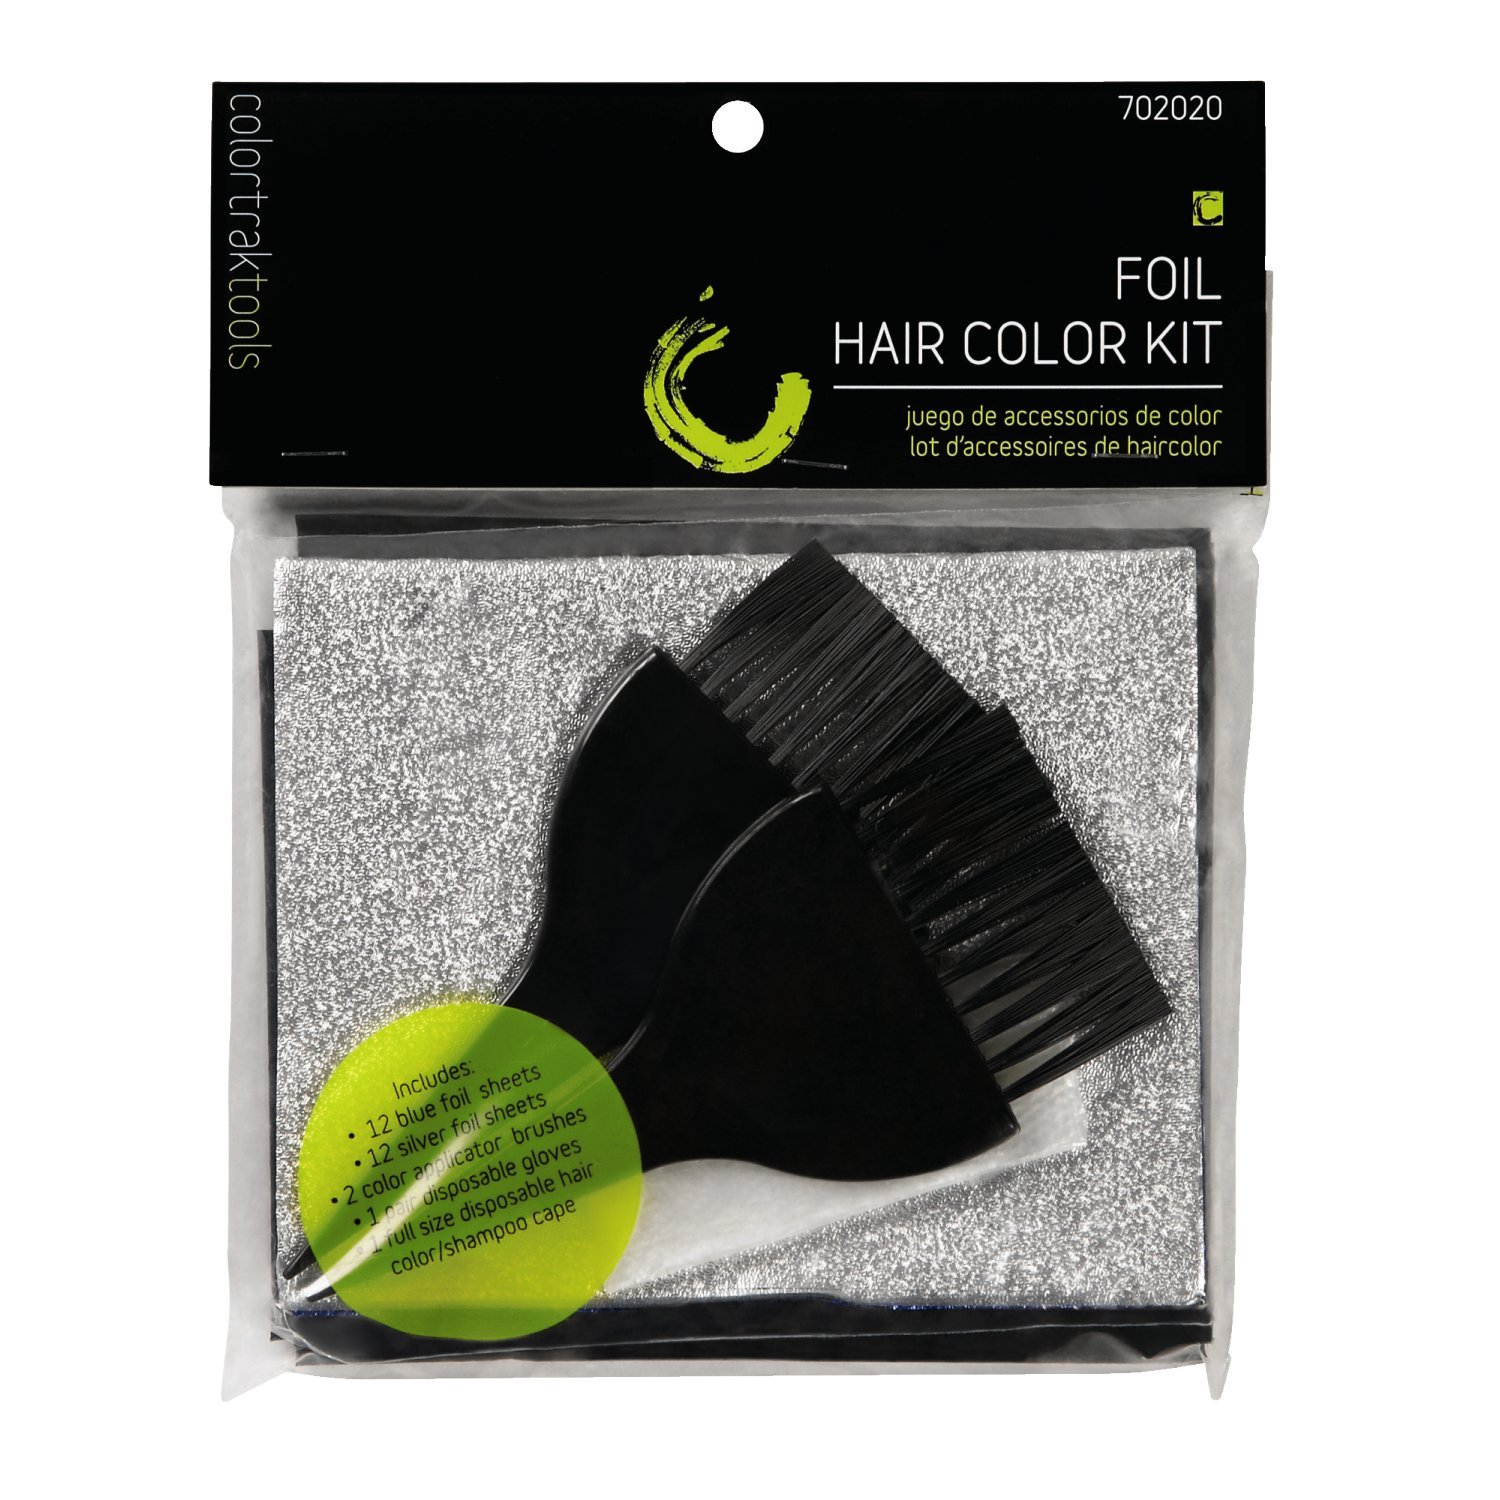 Color Trak Tools Foil Hair Color Kit